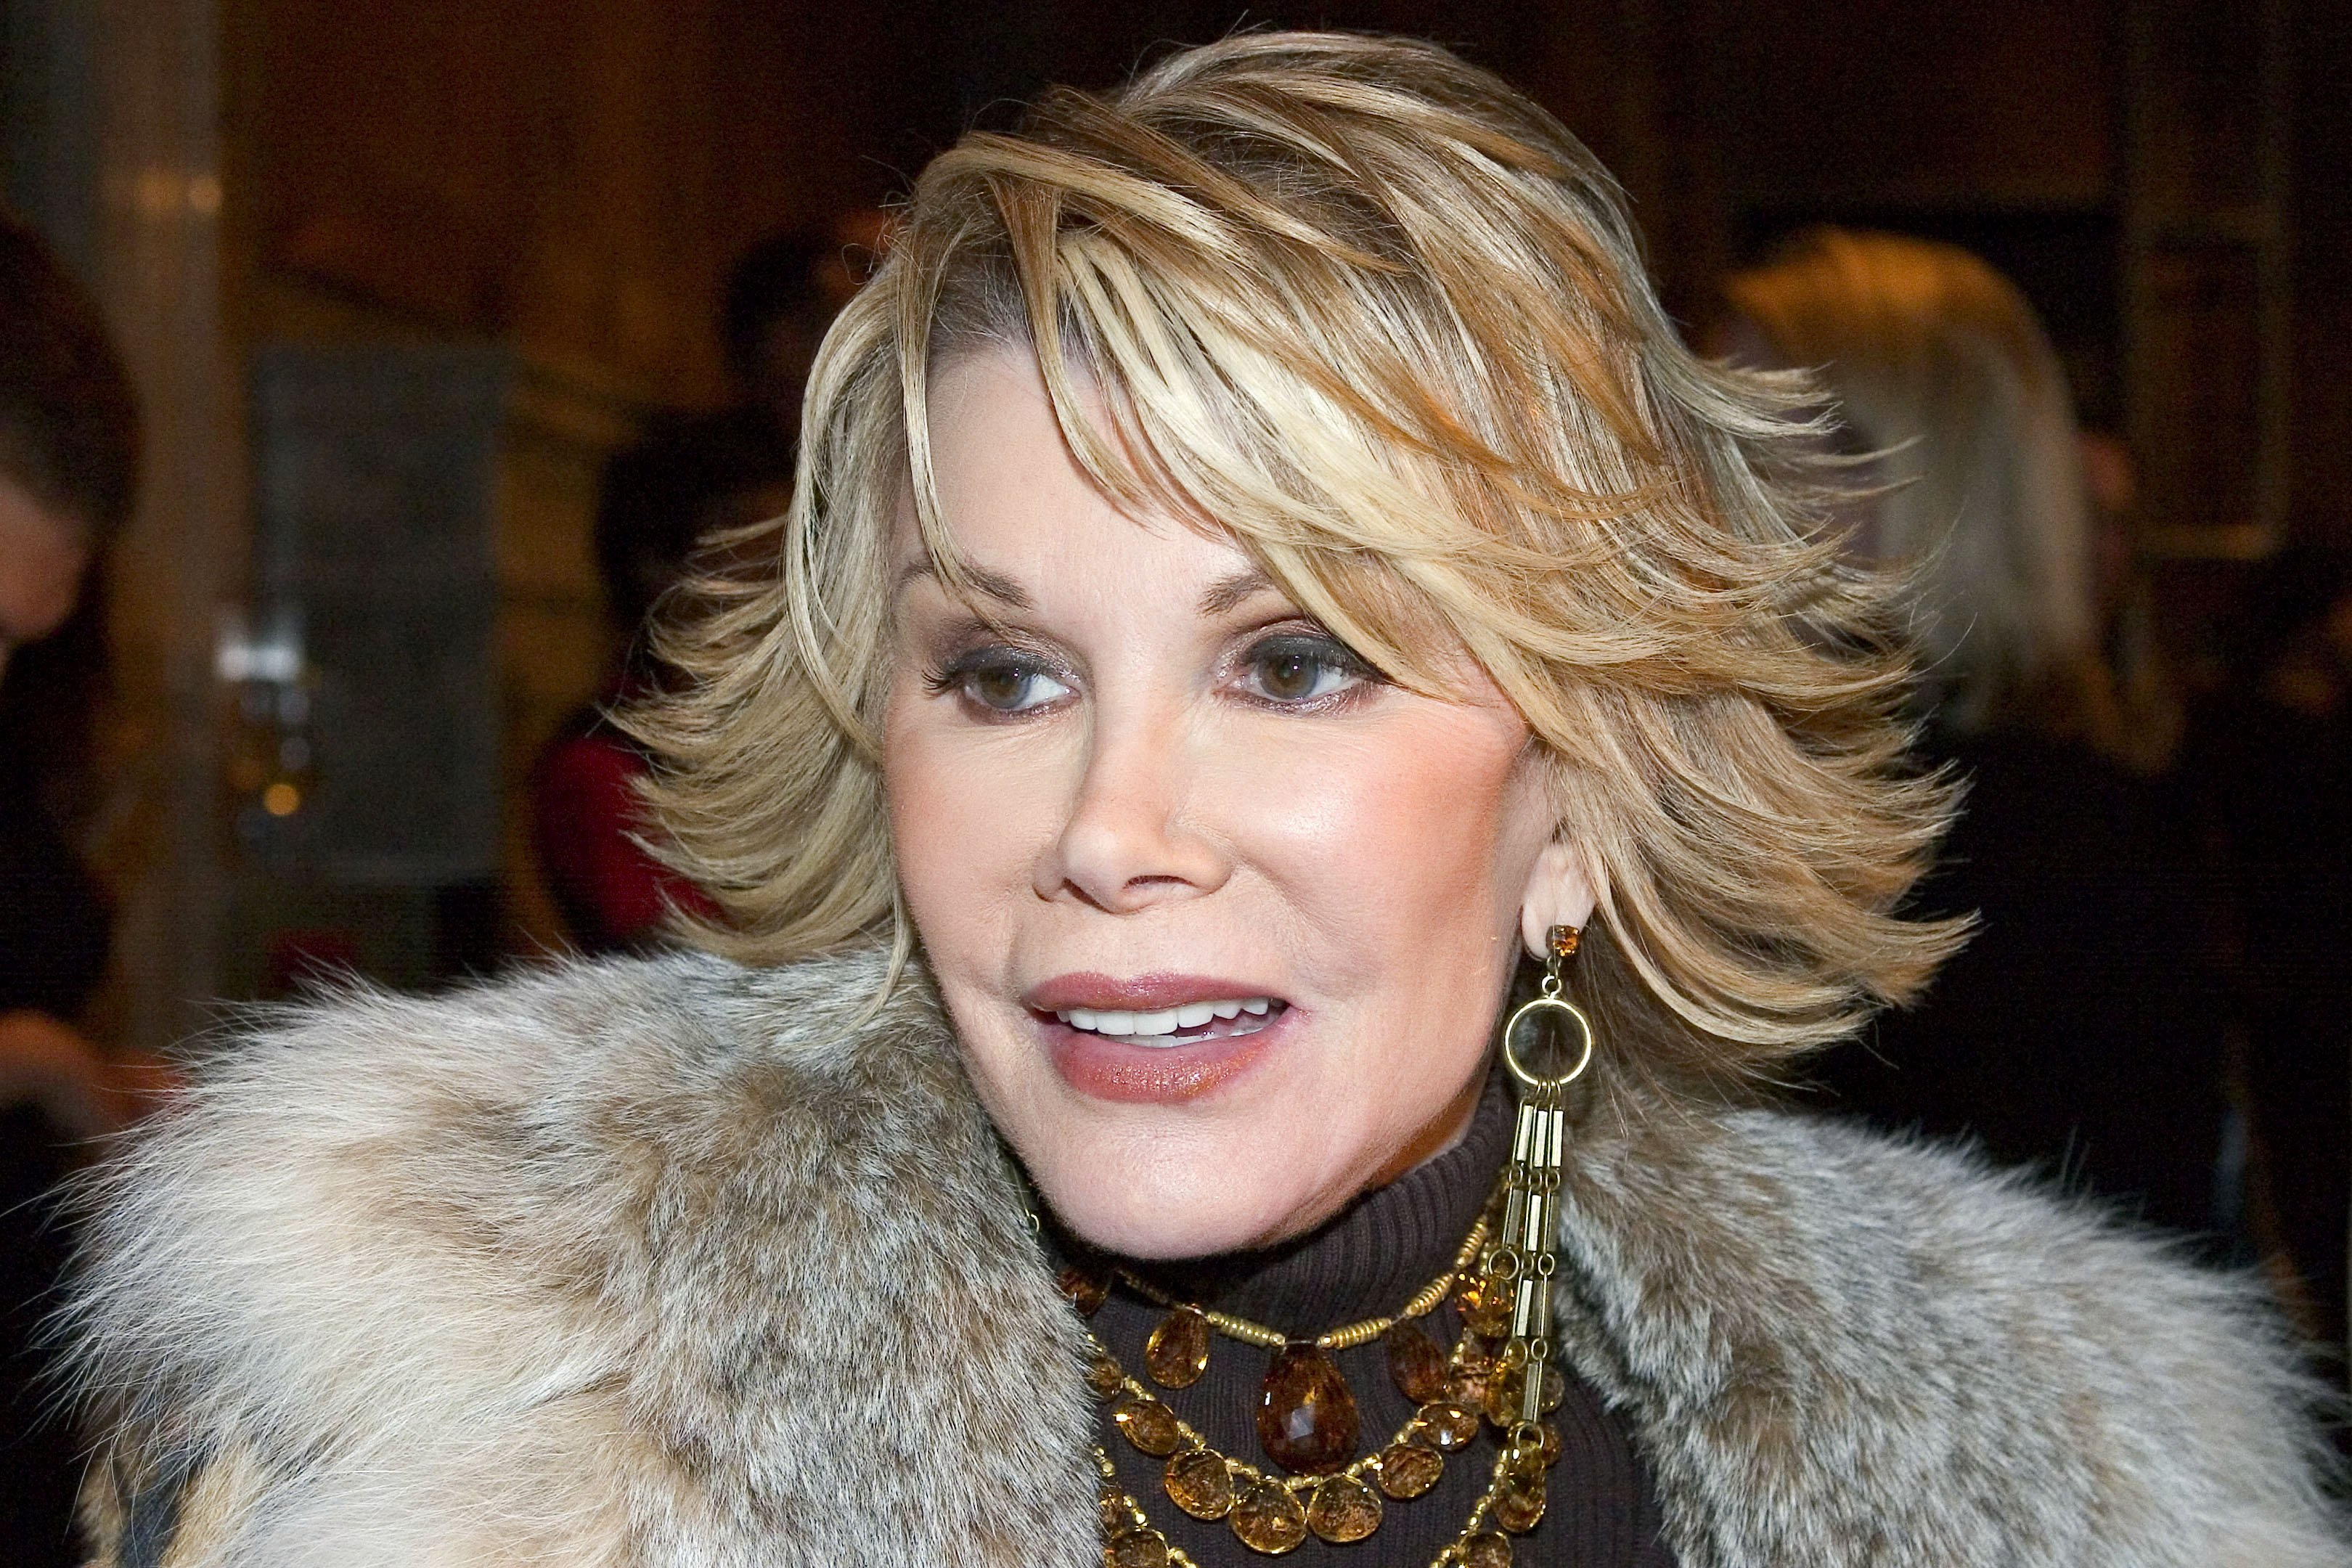 Joan Rivers arrives for the Banana Republic 2005 Spring Collection in New York City on October 25, 2004 | Photo: Getty Images